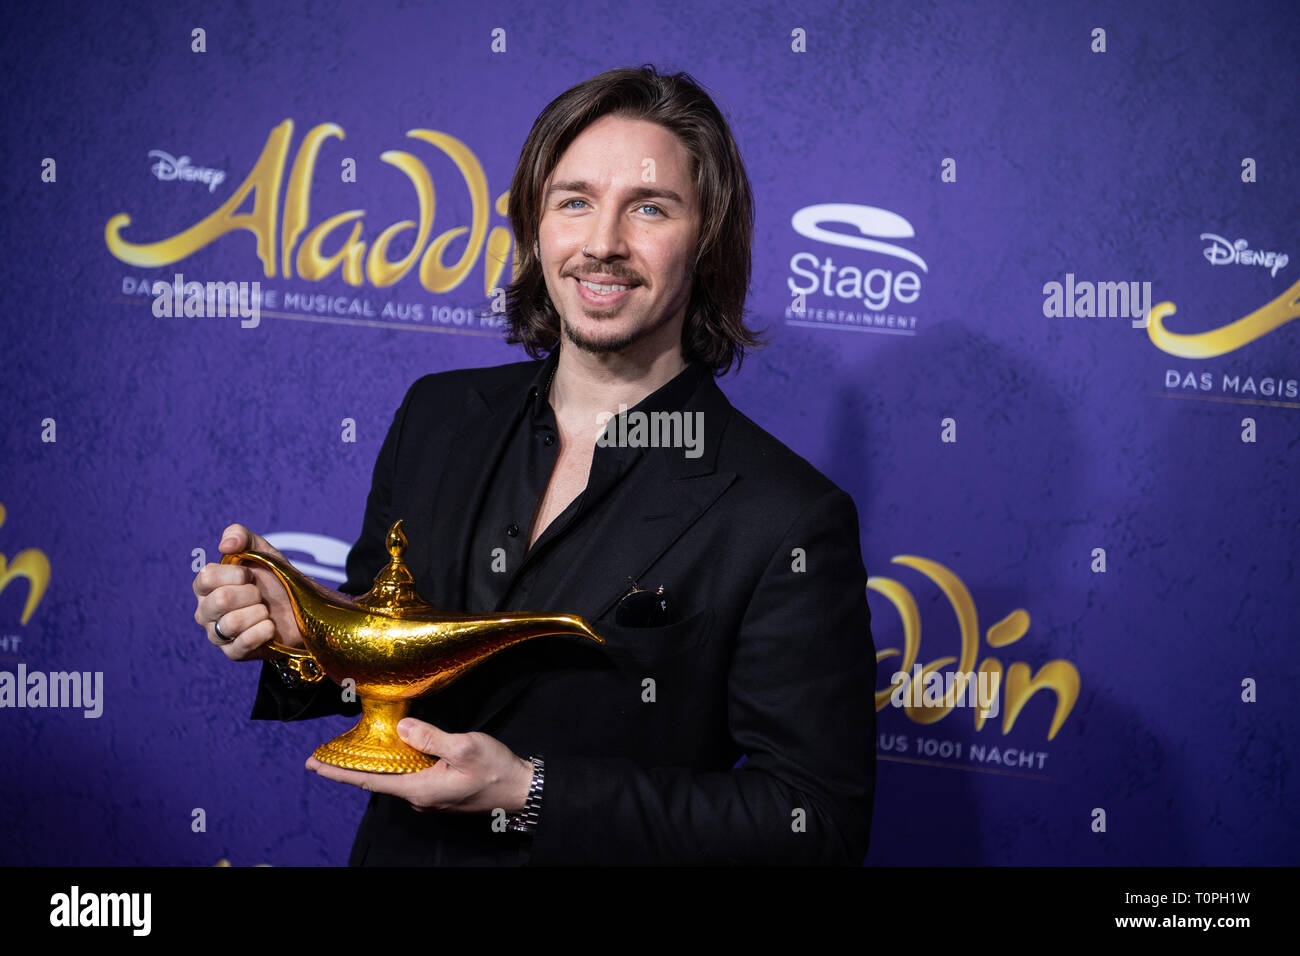 Stuttgart, Germany. 21st Mar, 2019. Gil Ofarim, singer, comes over the red carpet to the premiere of the musical 'Aladdin'. The musical was previously shown in Hamburg. Credit: Fabian Sommer/dpa/Alamy Live News - Stock Image